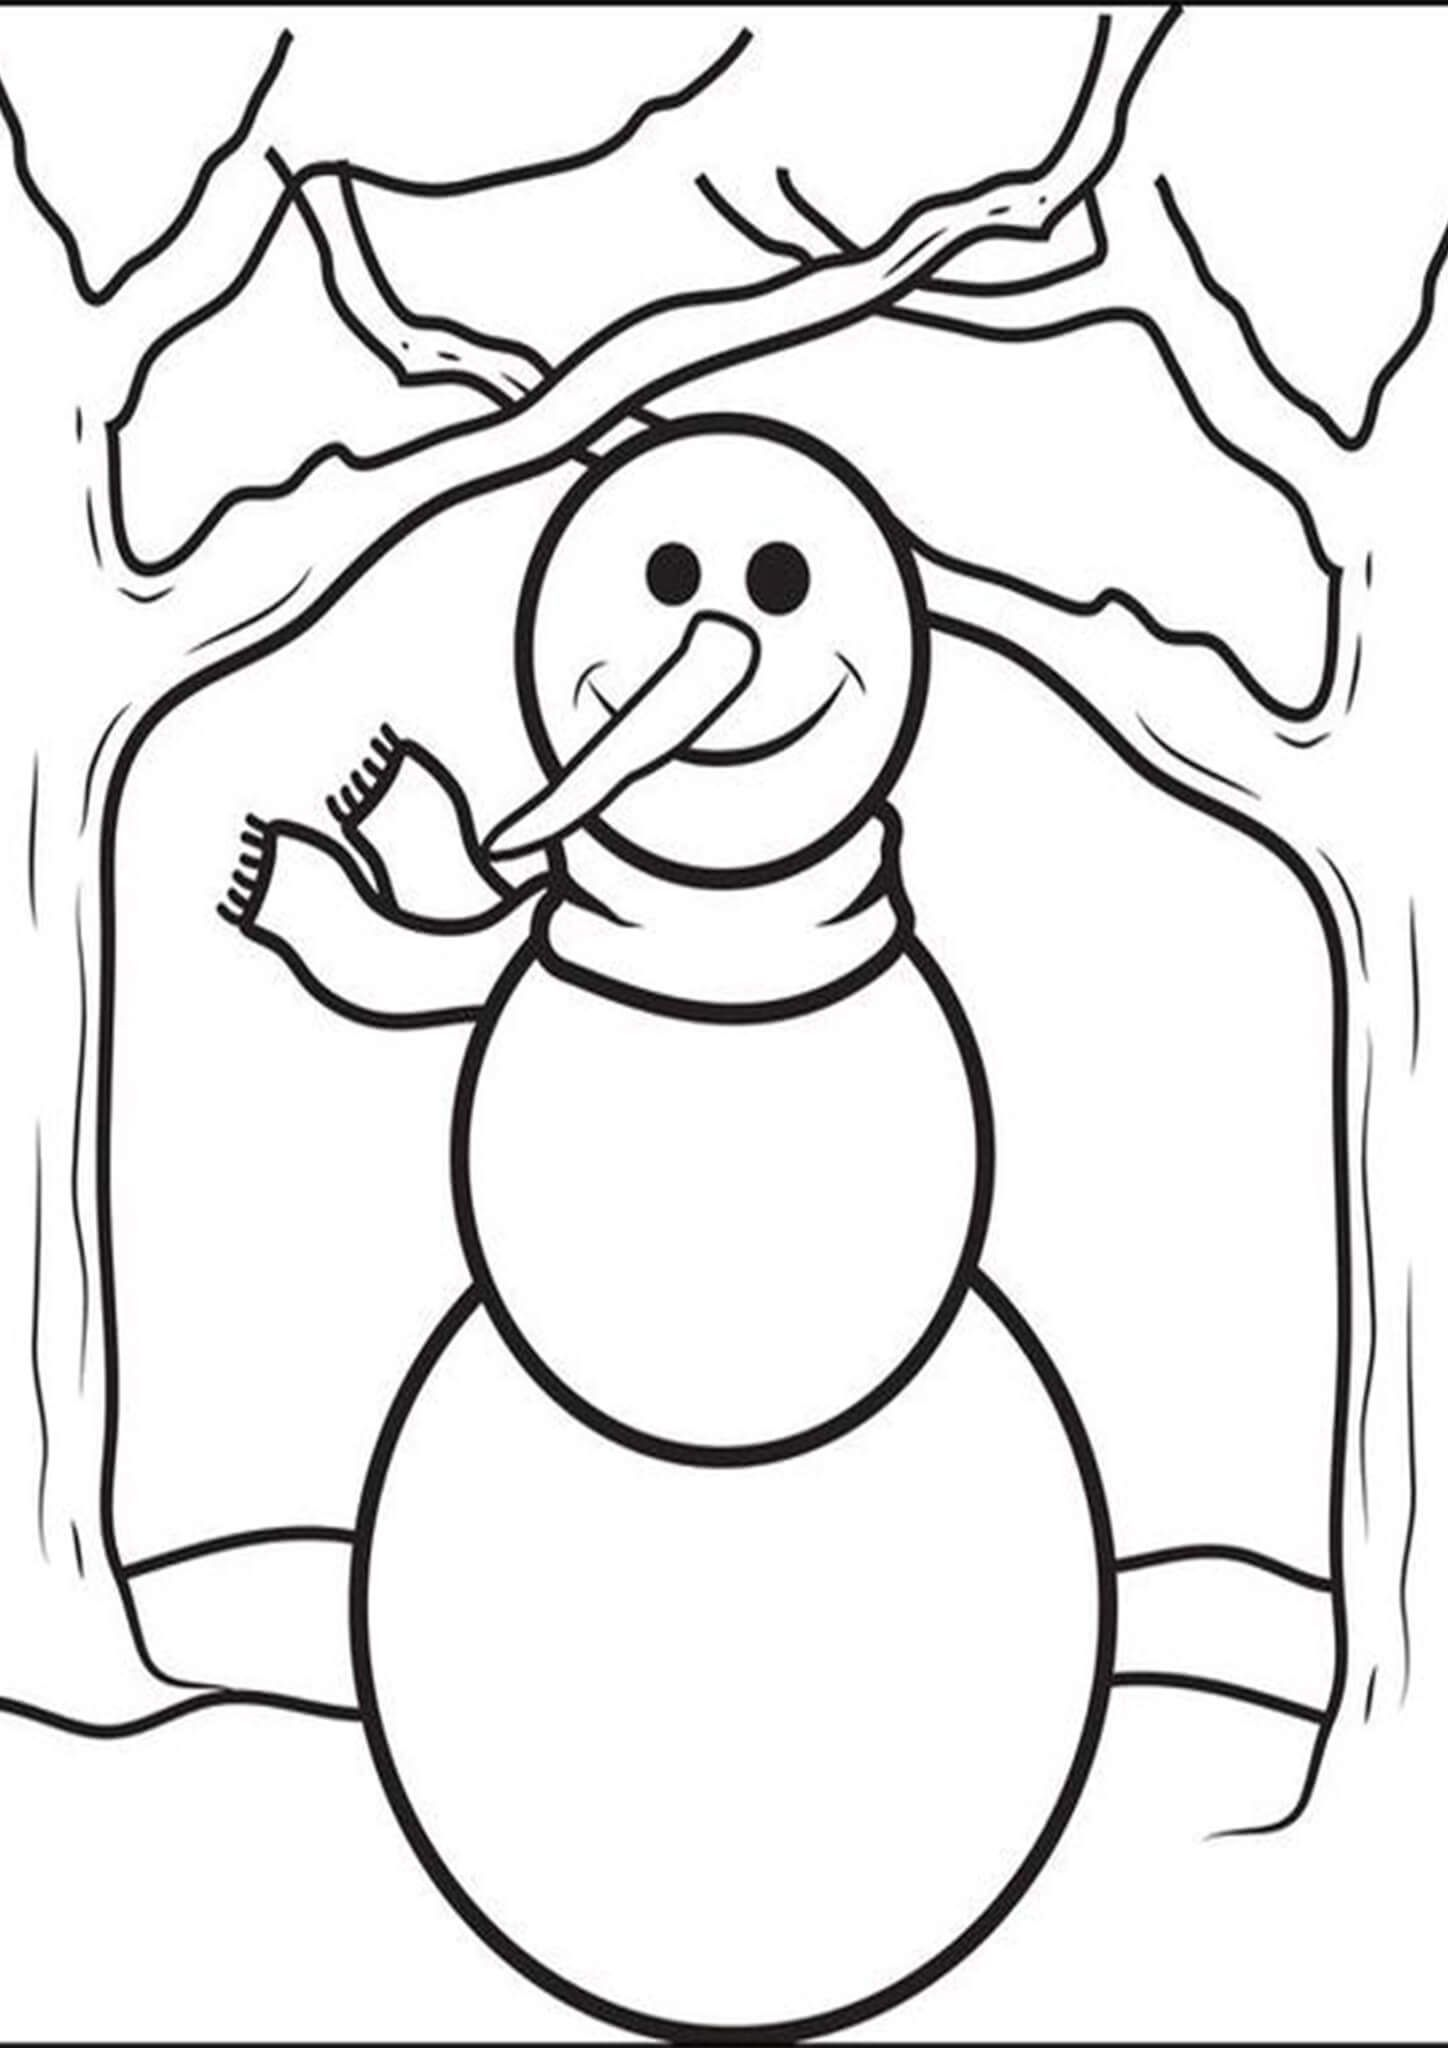 Free Printable Snowman Coloring Pages Snowman Coloring Pages Coloring Pages For Kids Coloring Pages